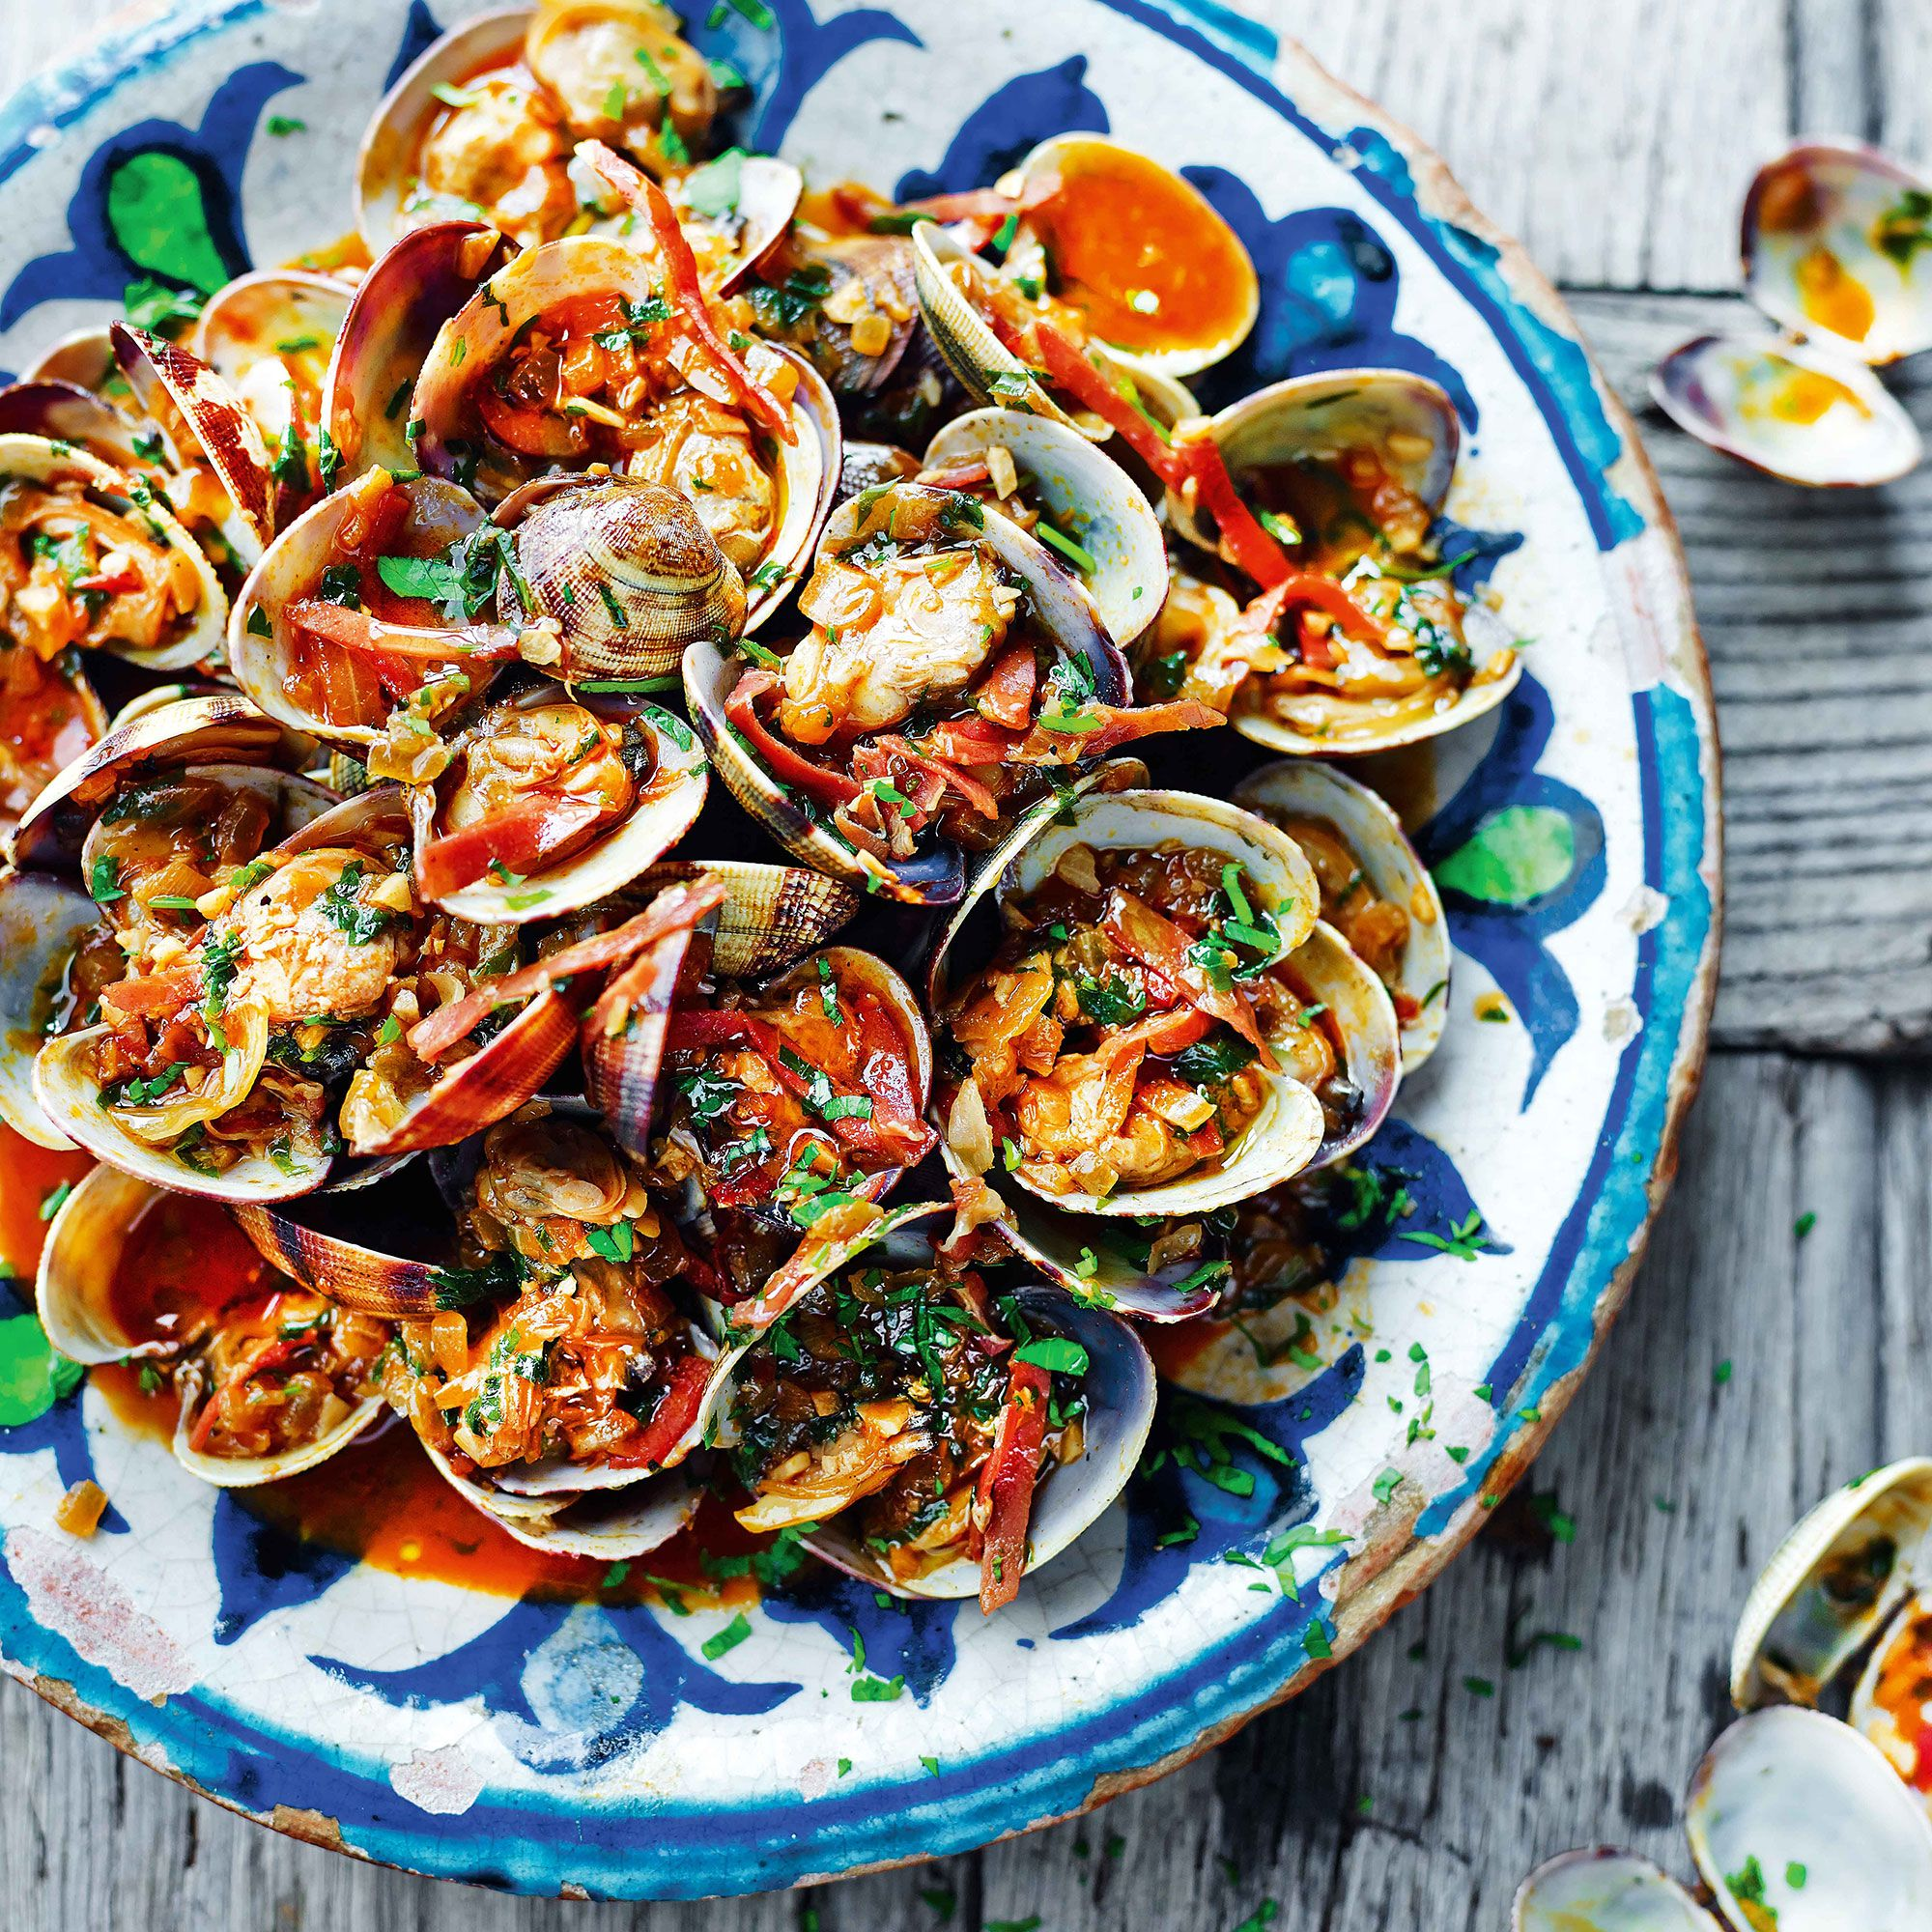 Clams garlic pimenton jamon and sherry what could be more